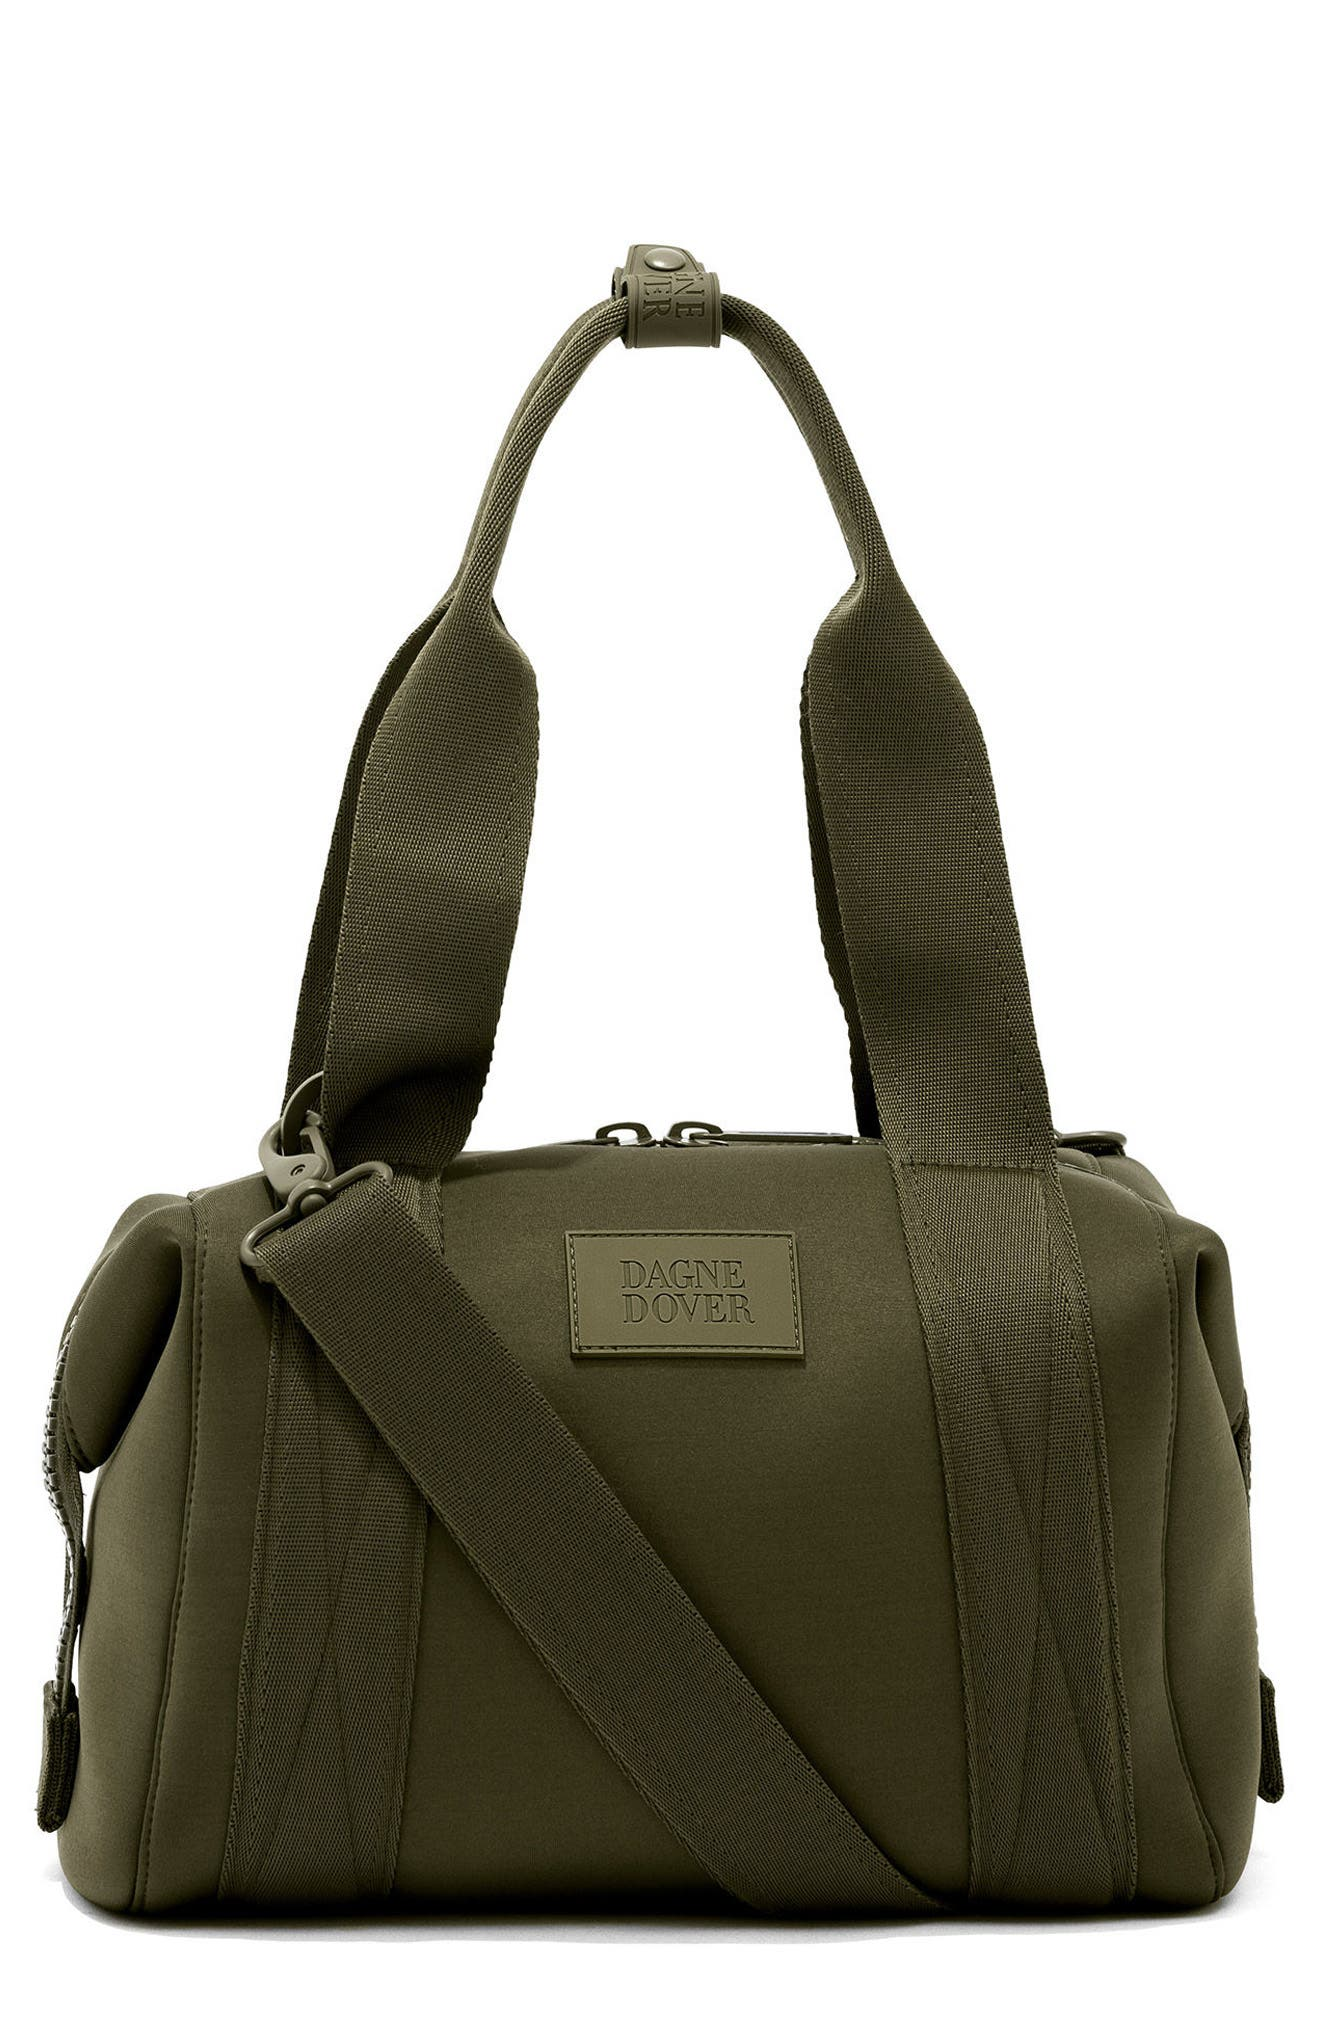 Main Image - Dagne Dover Small 365 Landon Neoprene Duffel Bag